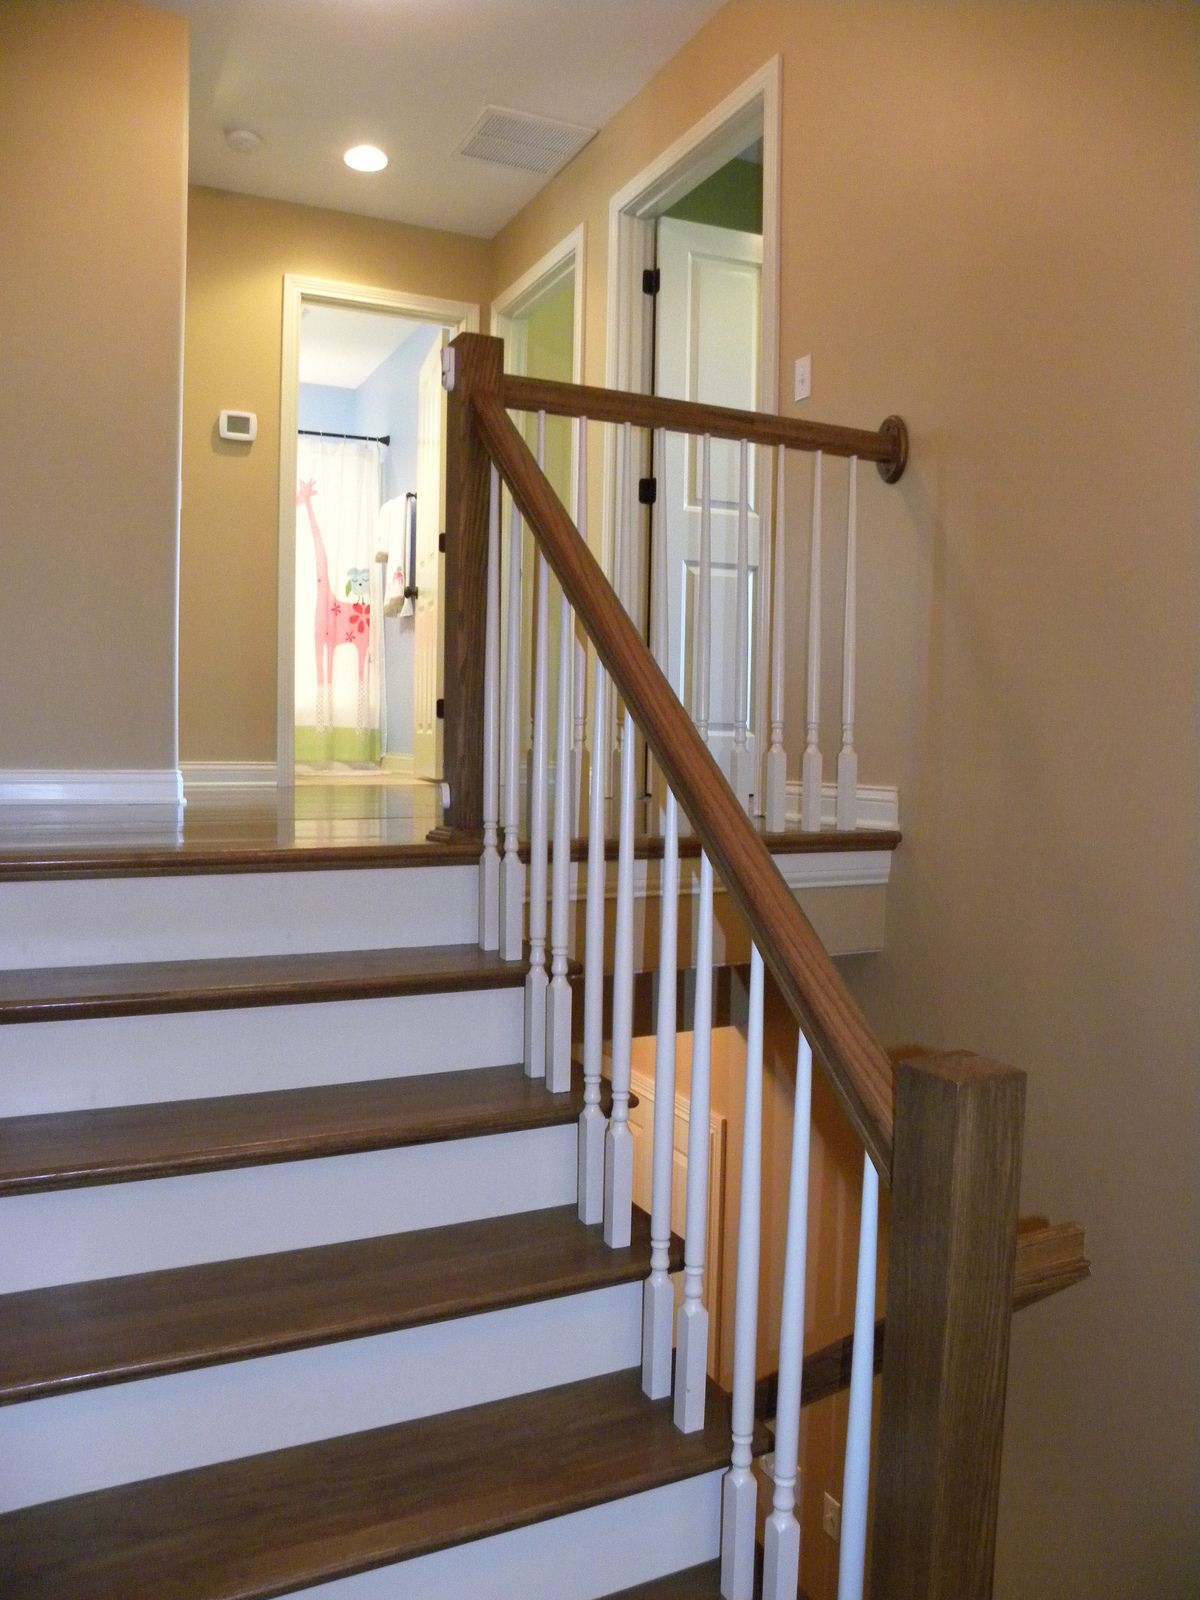 contemporary staircase ideas l pcs k in 2019 interior stairs rh pinterest com